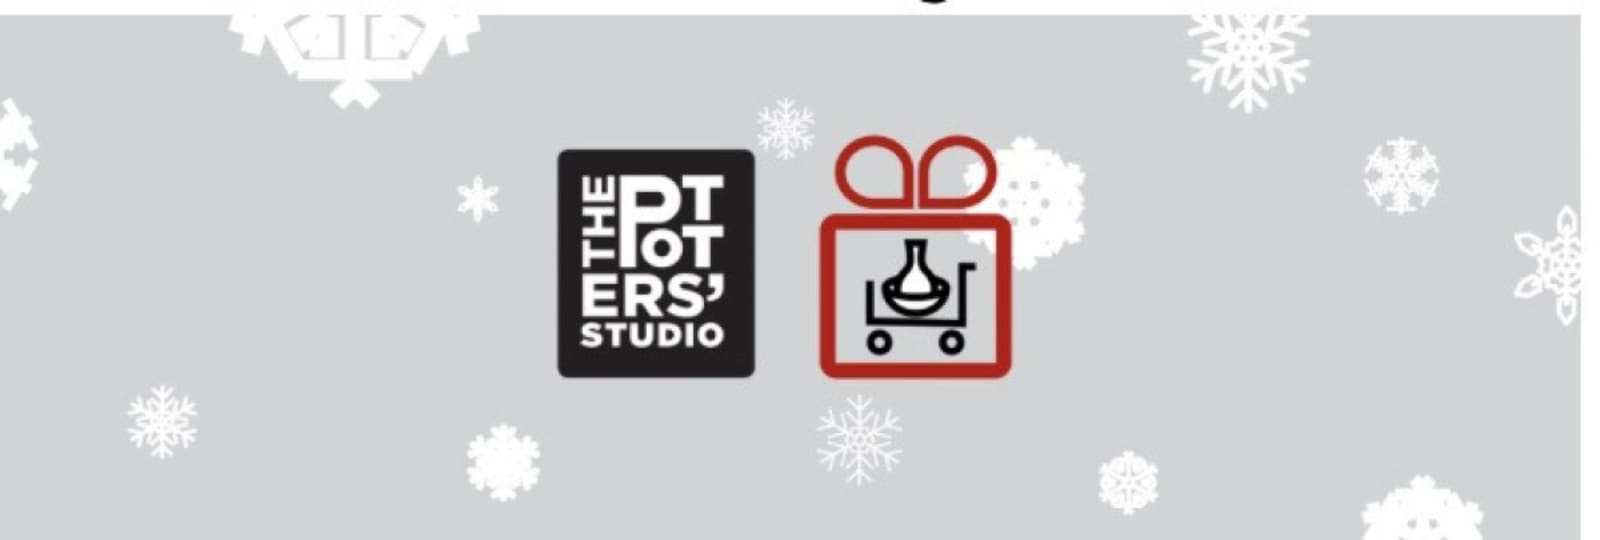 Gifts at The Potters' Studio